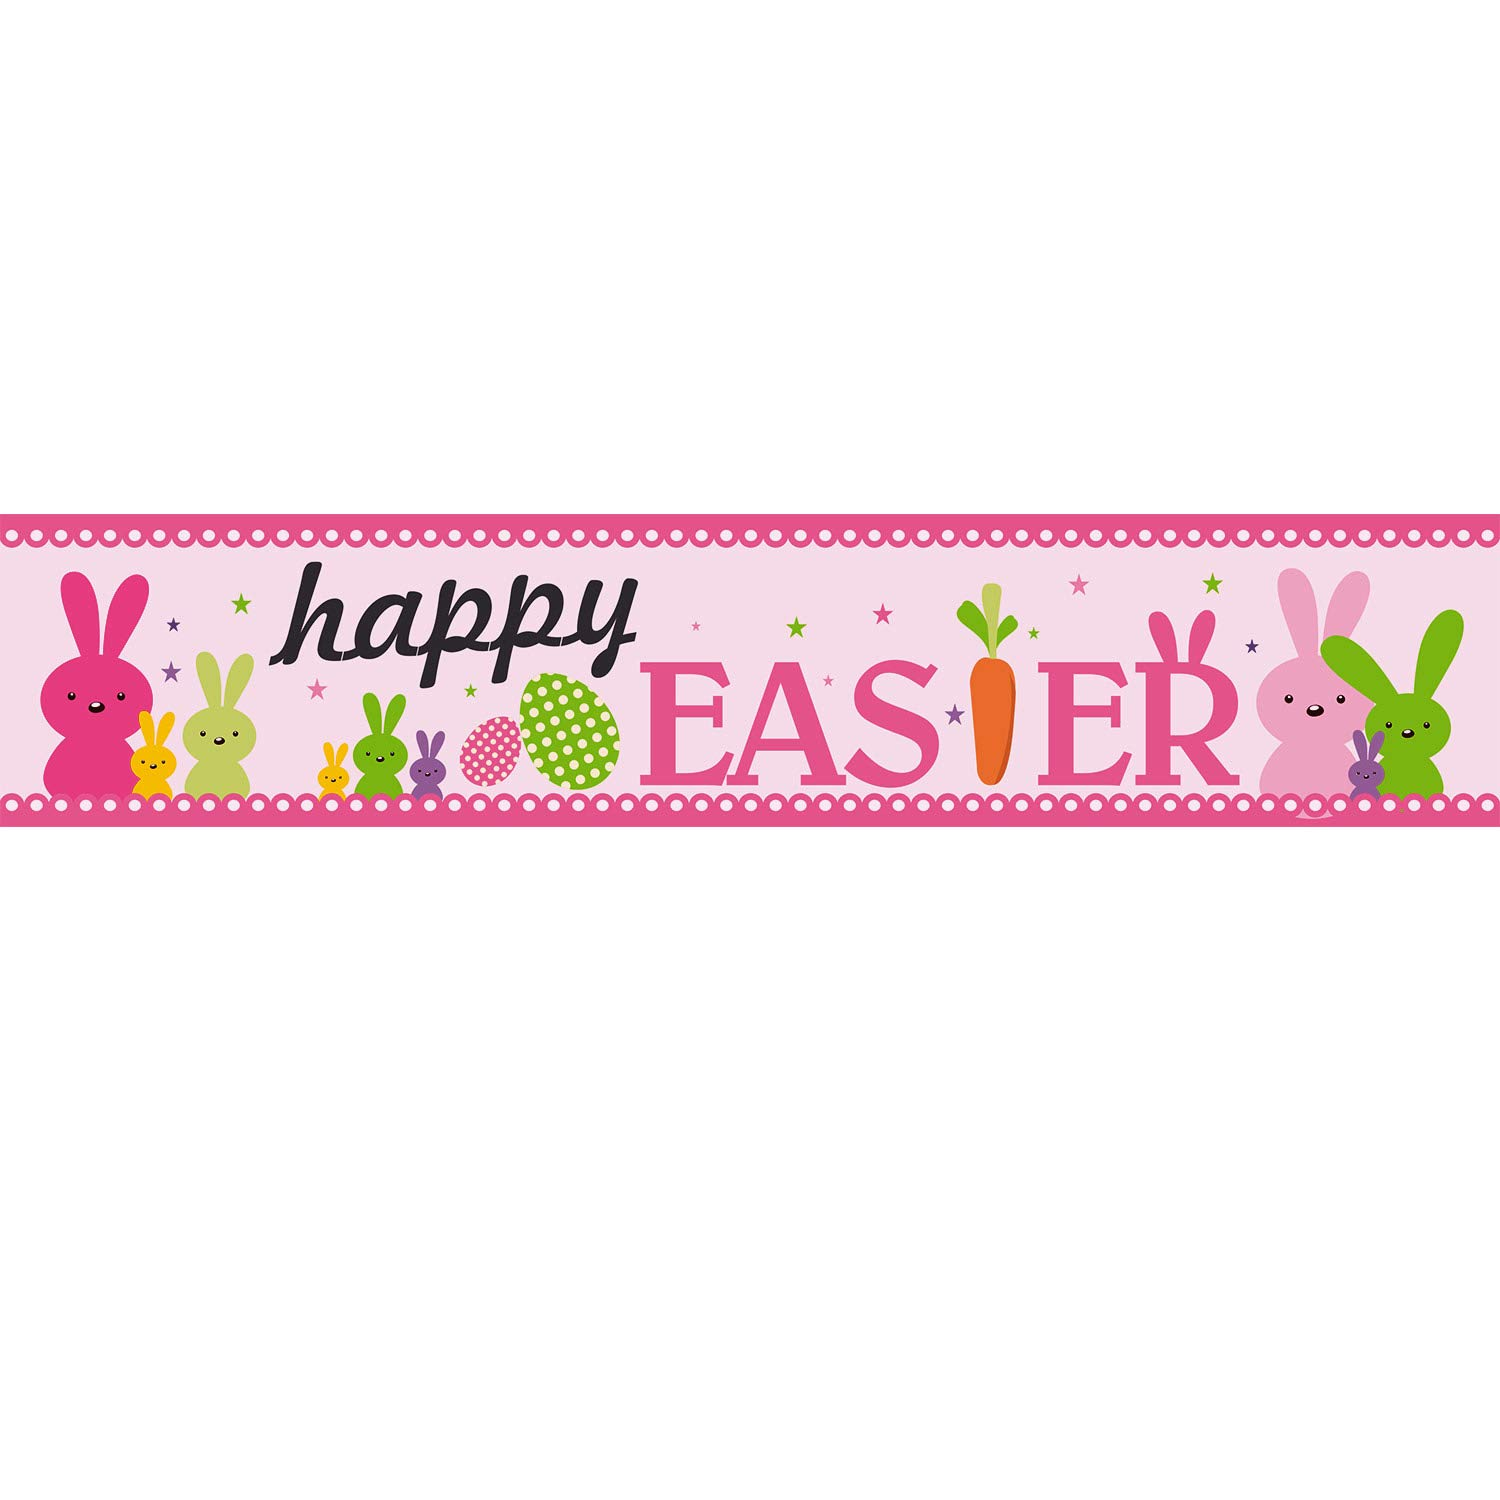 Frienda Happy Easter Banner Decorations, Easter Bunny Egg Garland Easter  Party Day Suppliers with 20 Glue Point Dots (Easter Pink).